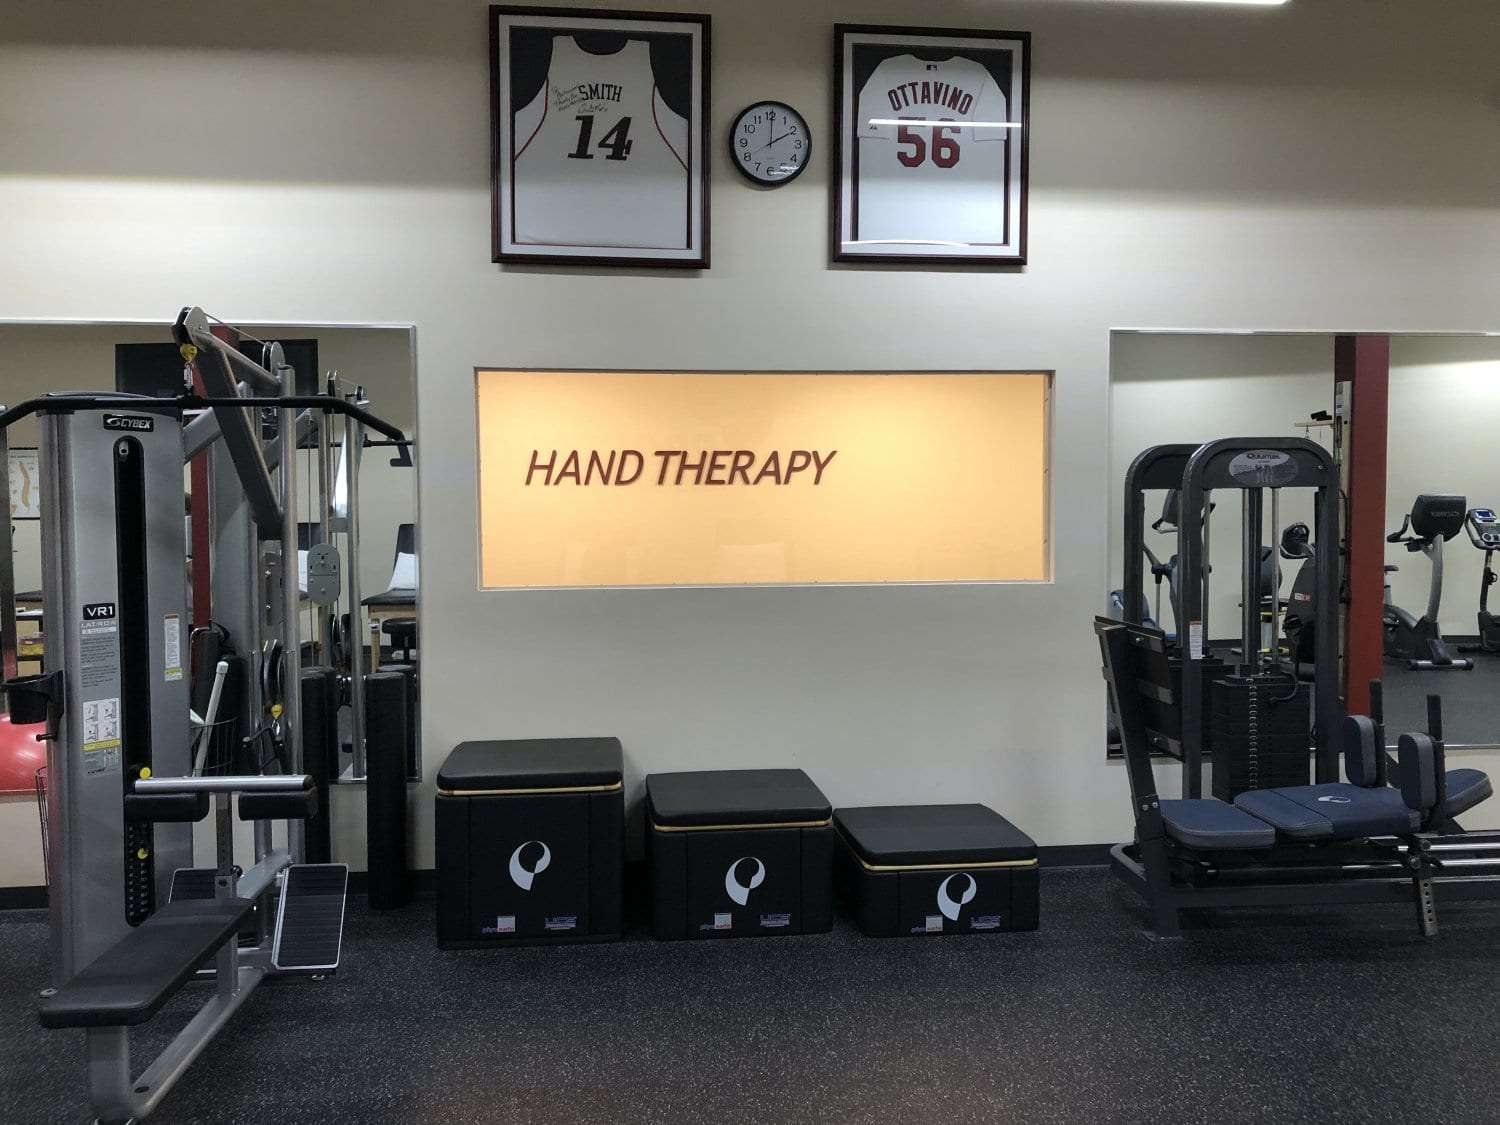 This is a photo of a hand therapy sign at our physical therapy clinic in Bay Shore, New York.